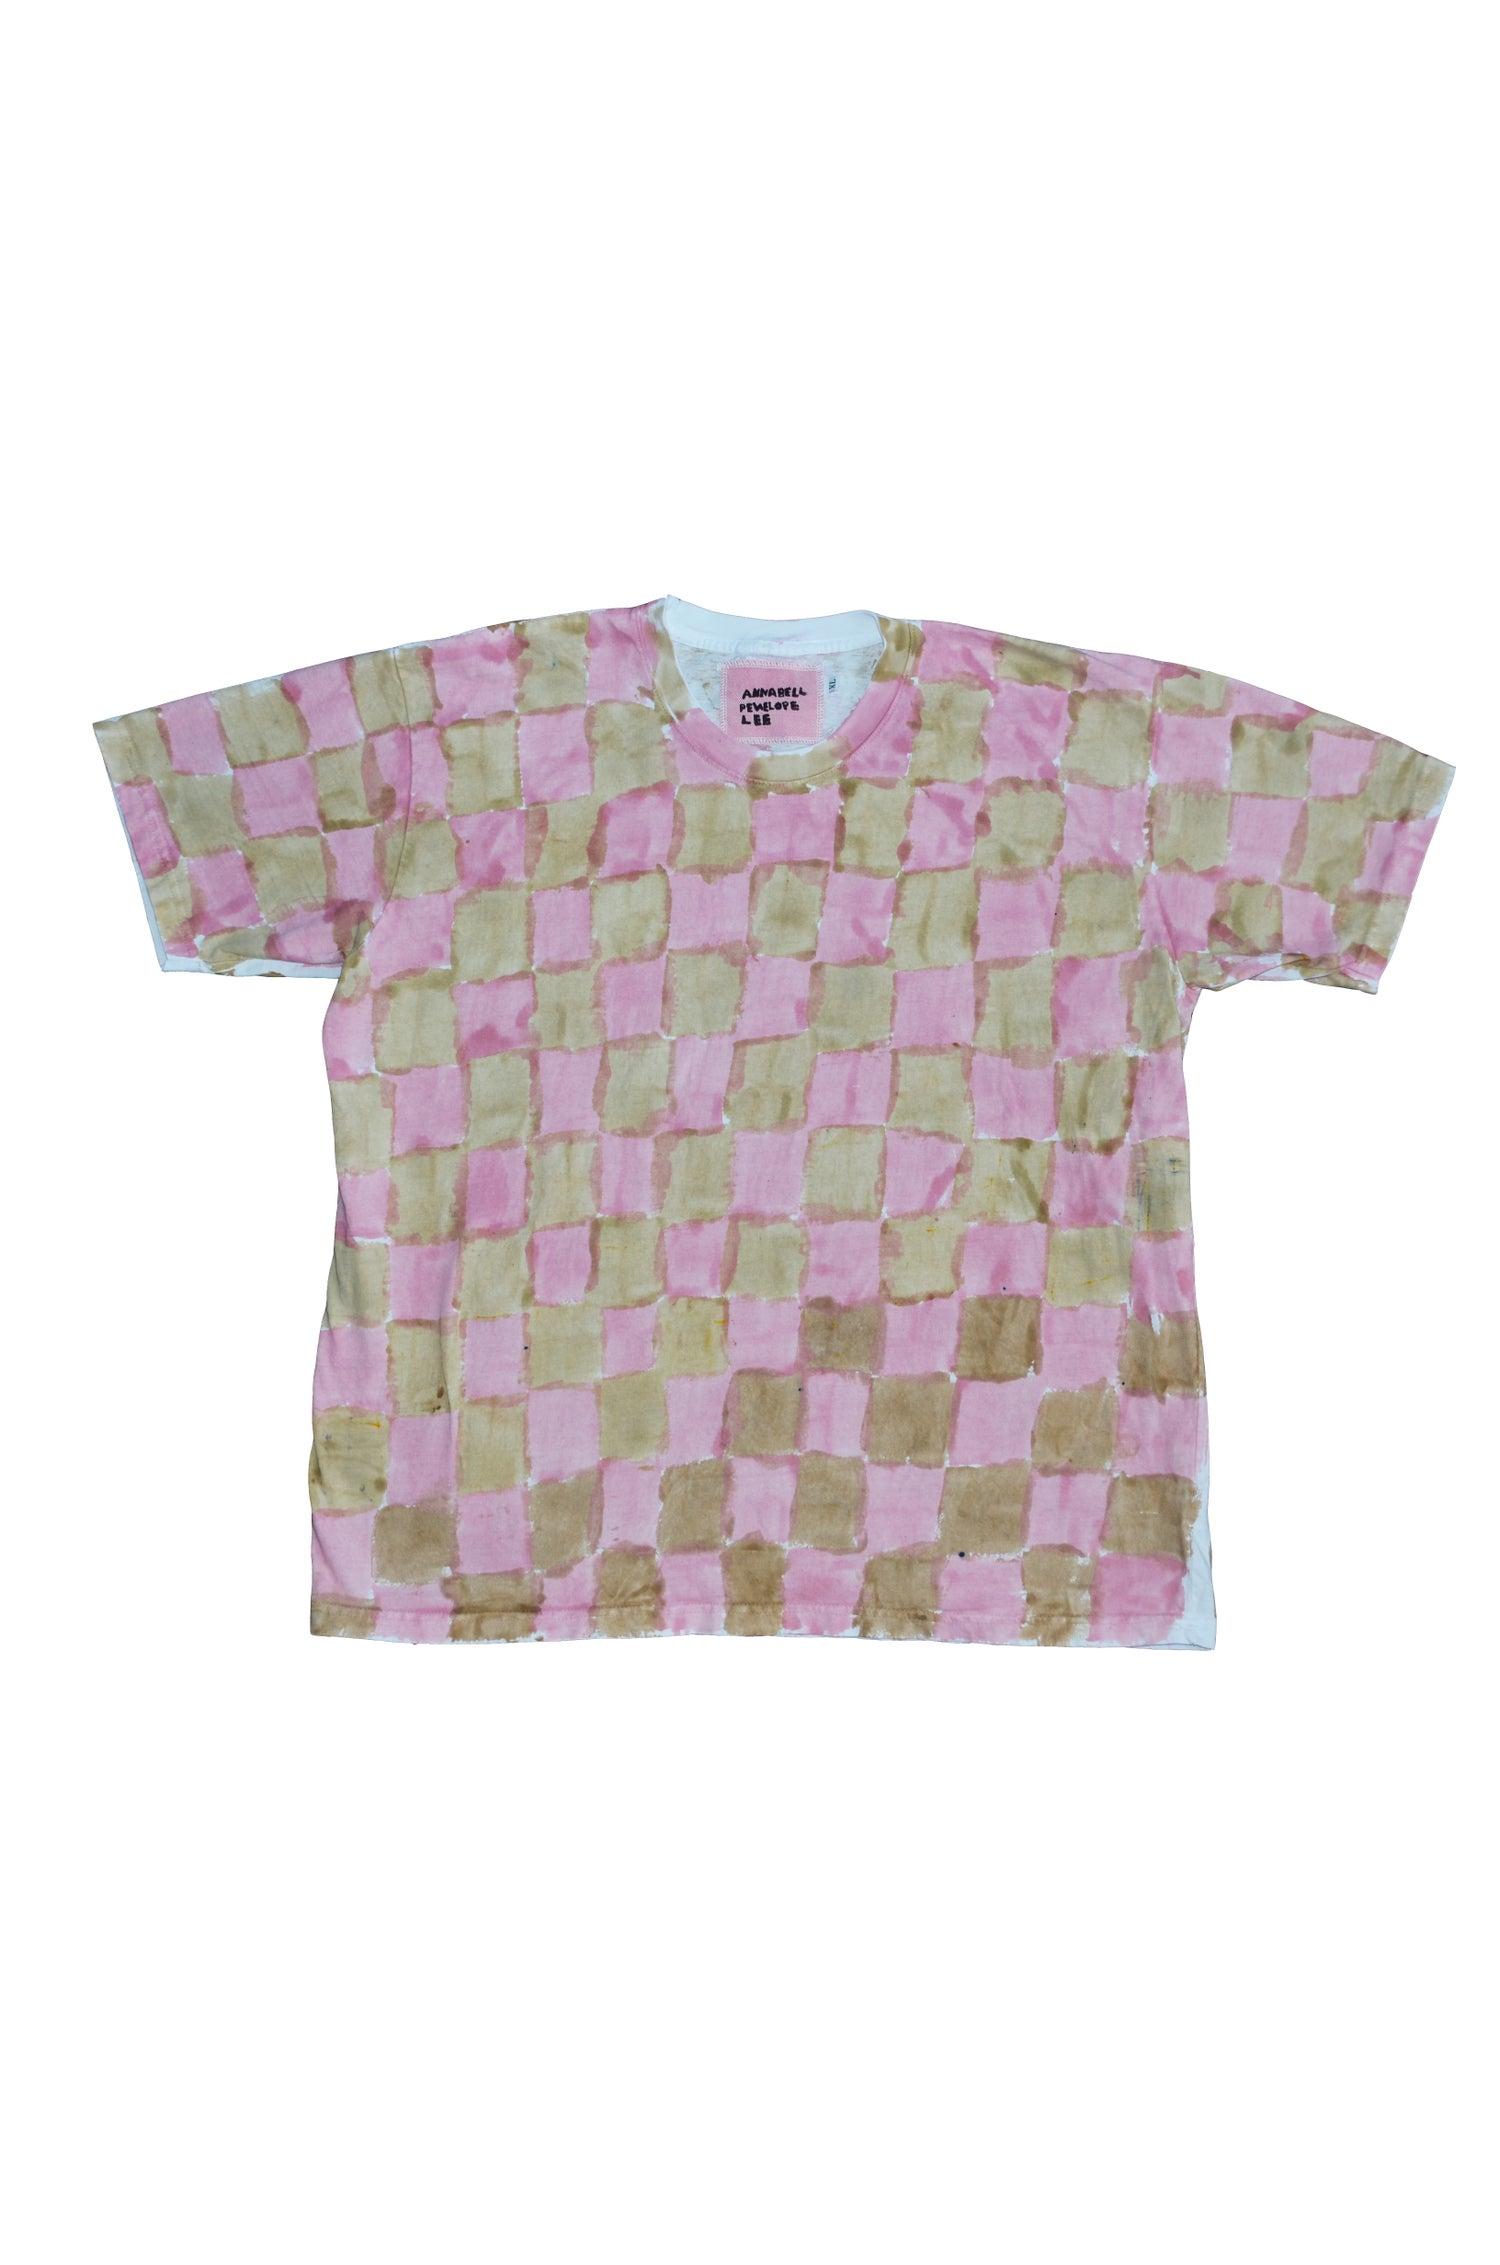 Image of pink and ecru xl